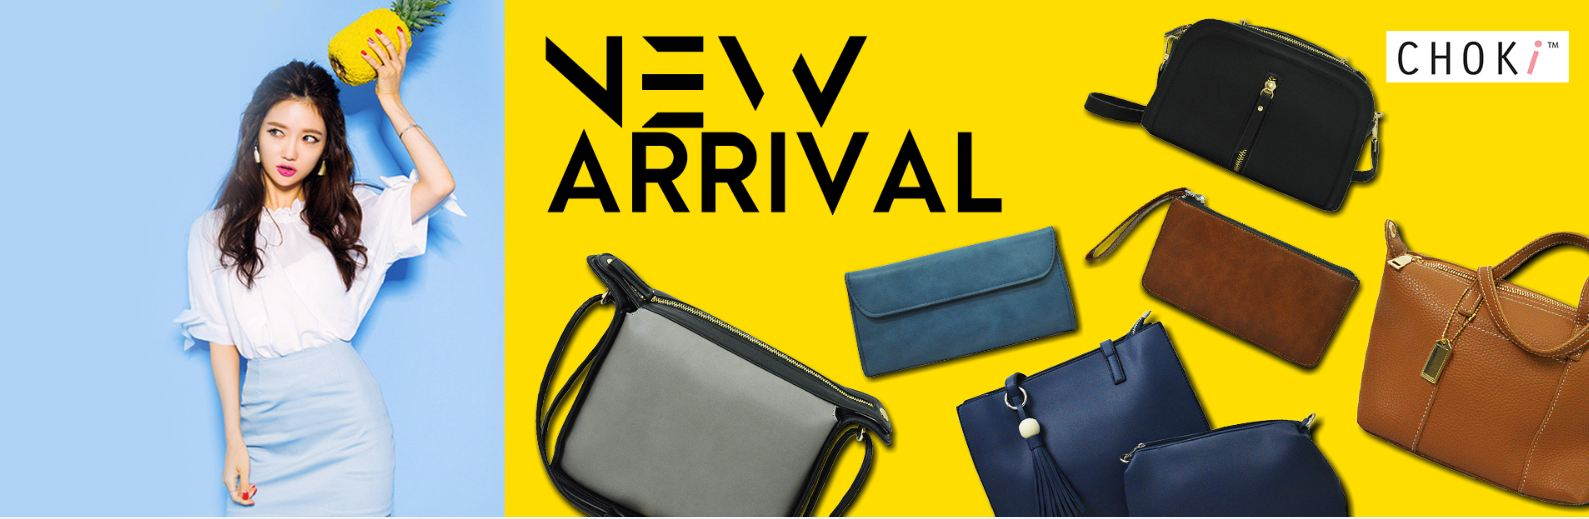 Choki.com.my - New arrival bags: Start From November 2017